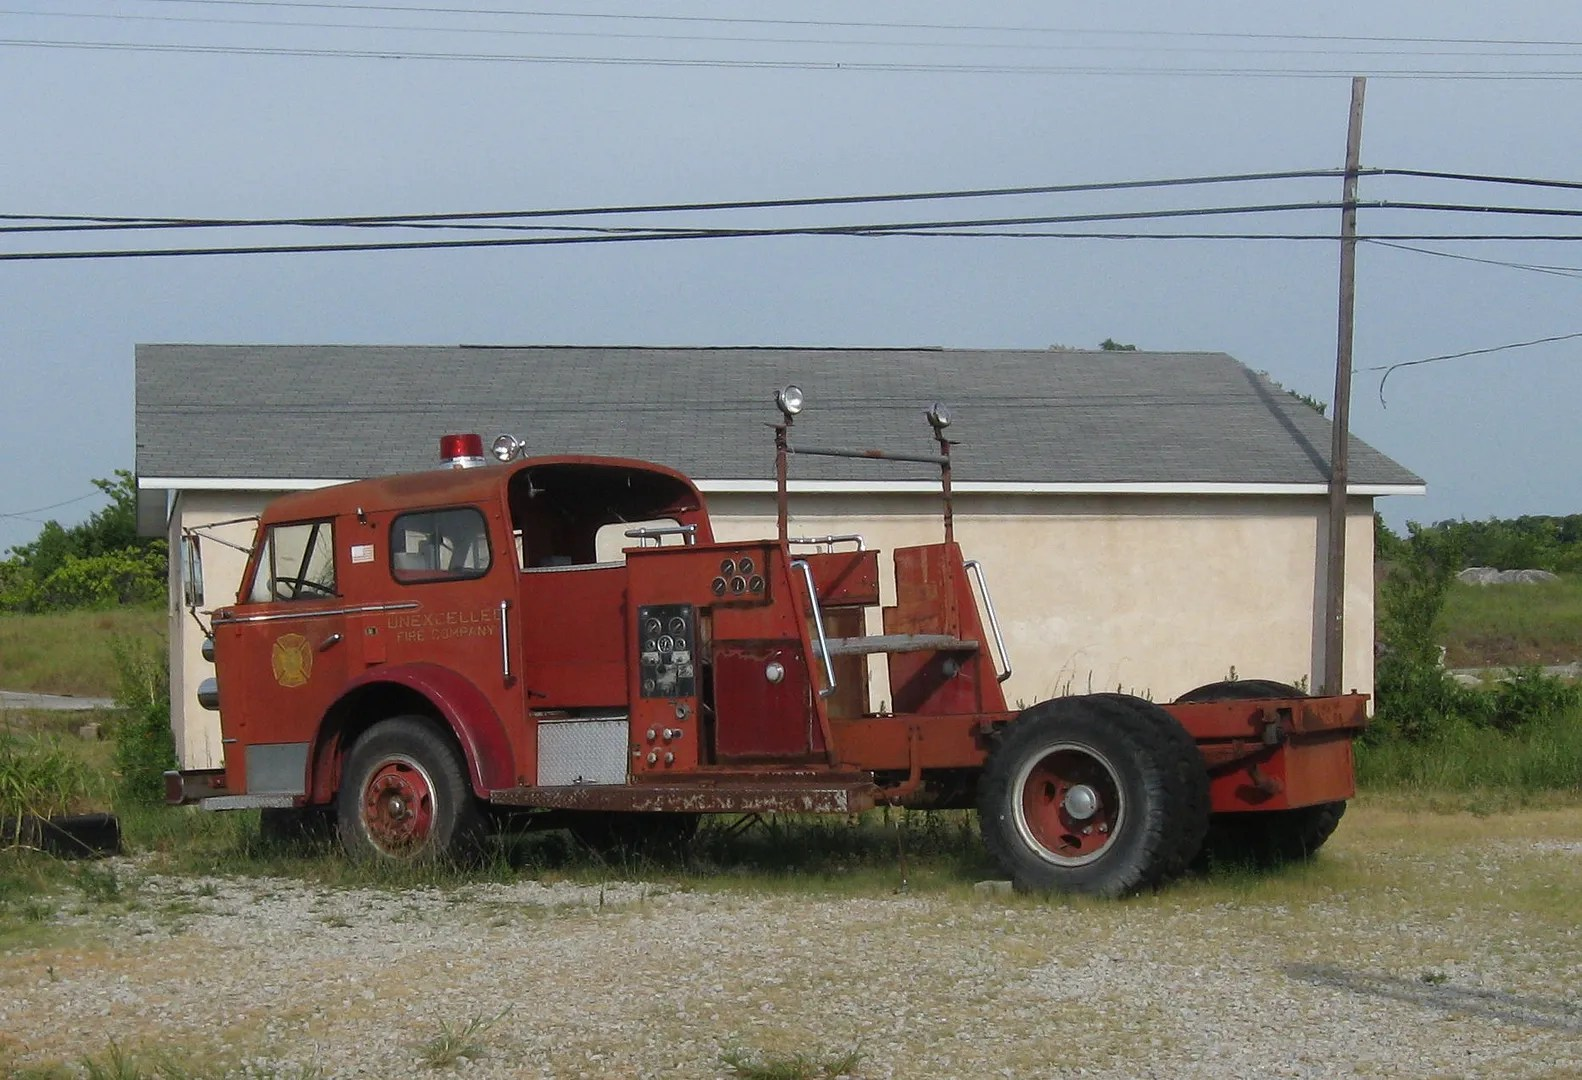 fire truck chassis, Route 66, Galena, Kansas